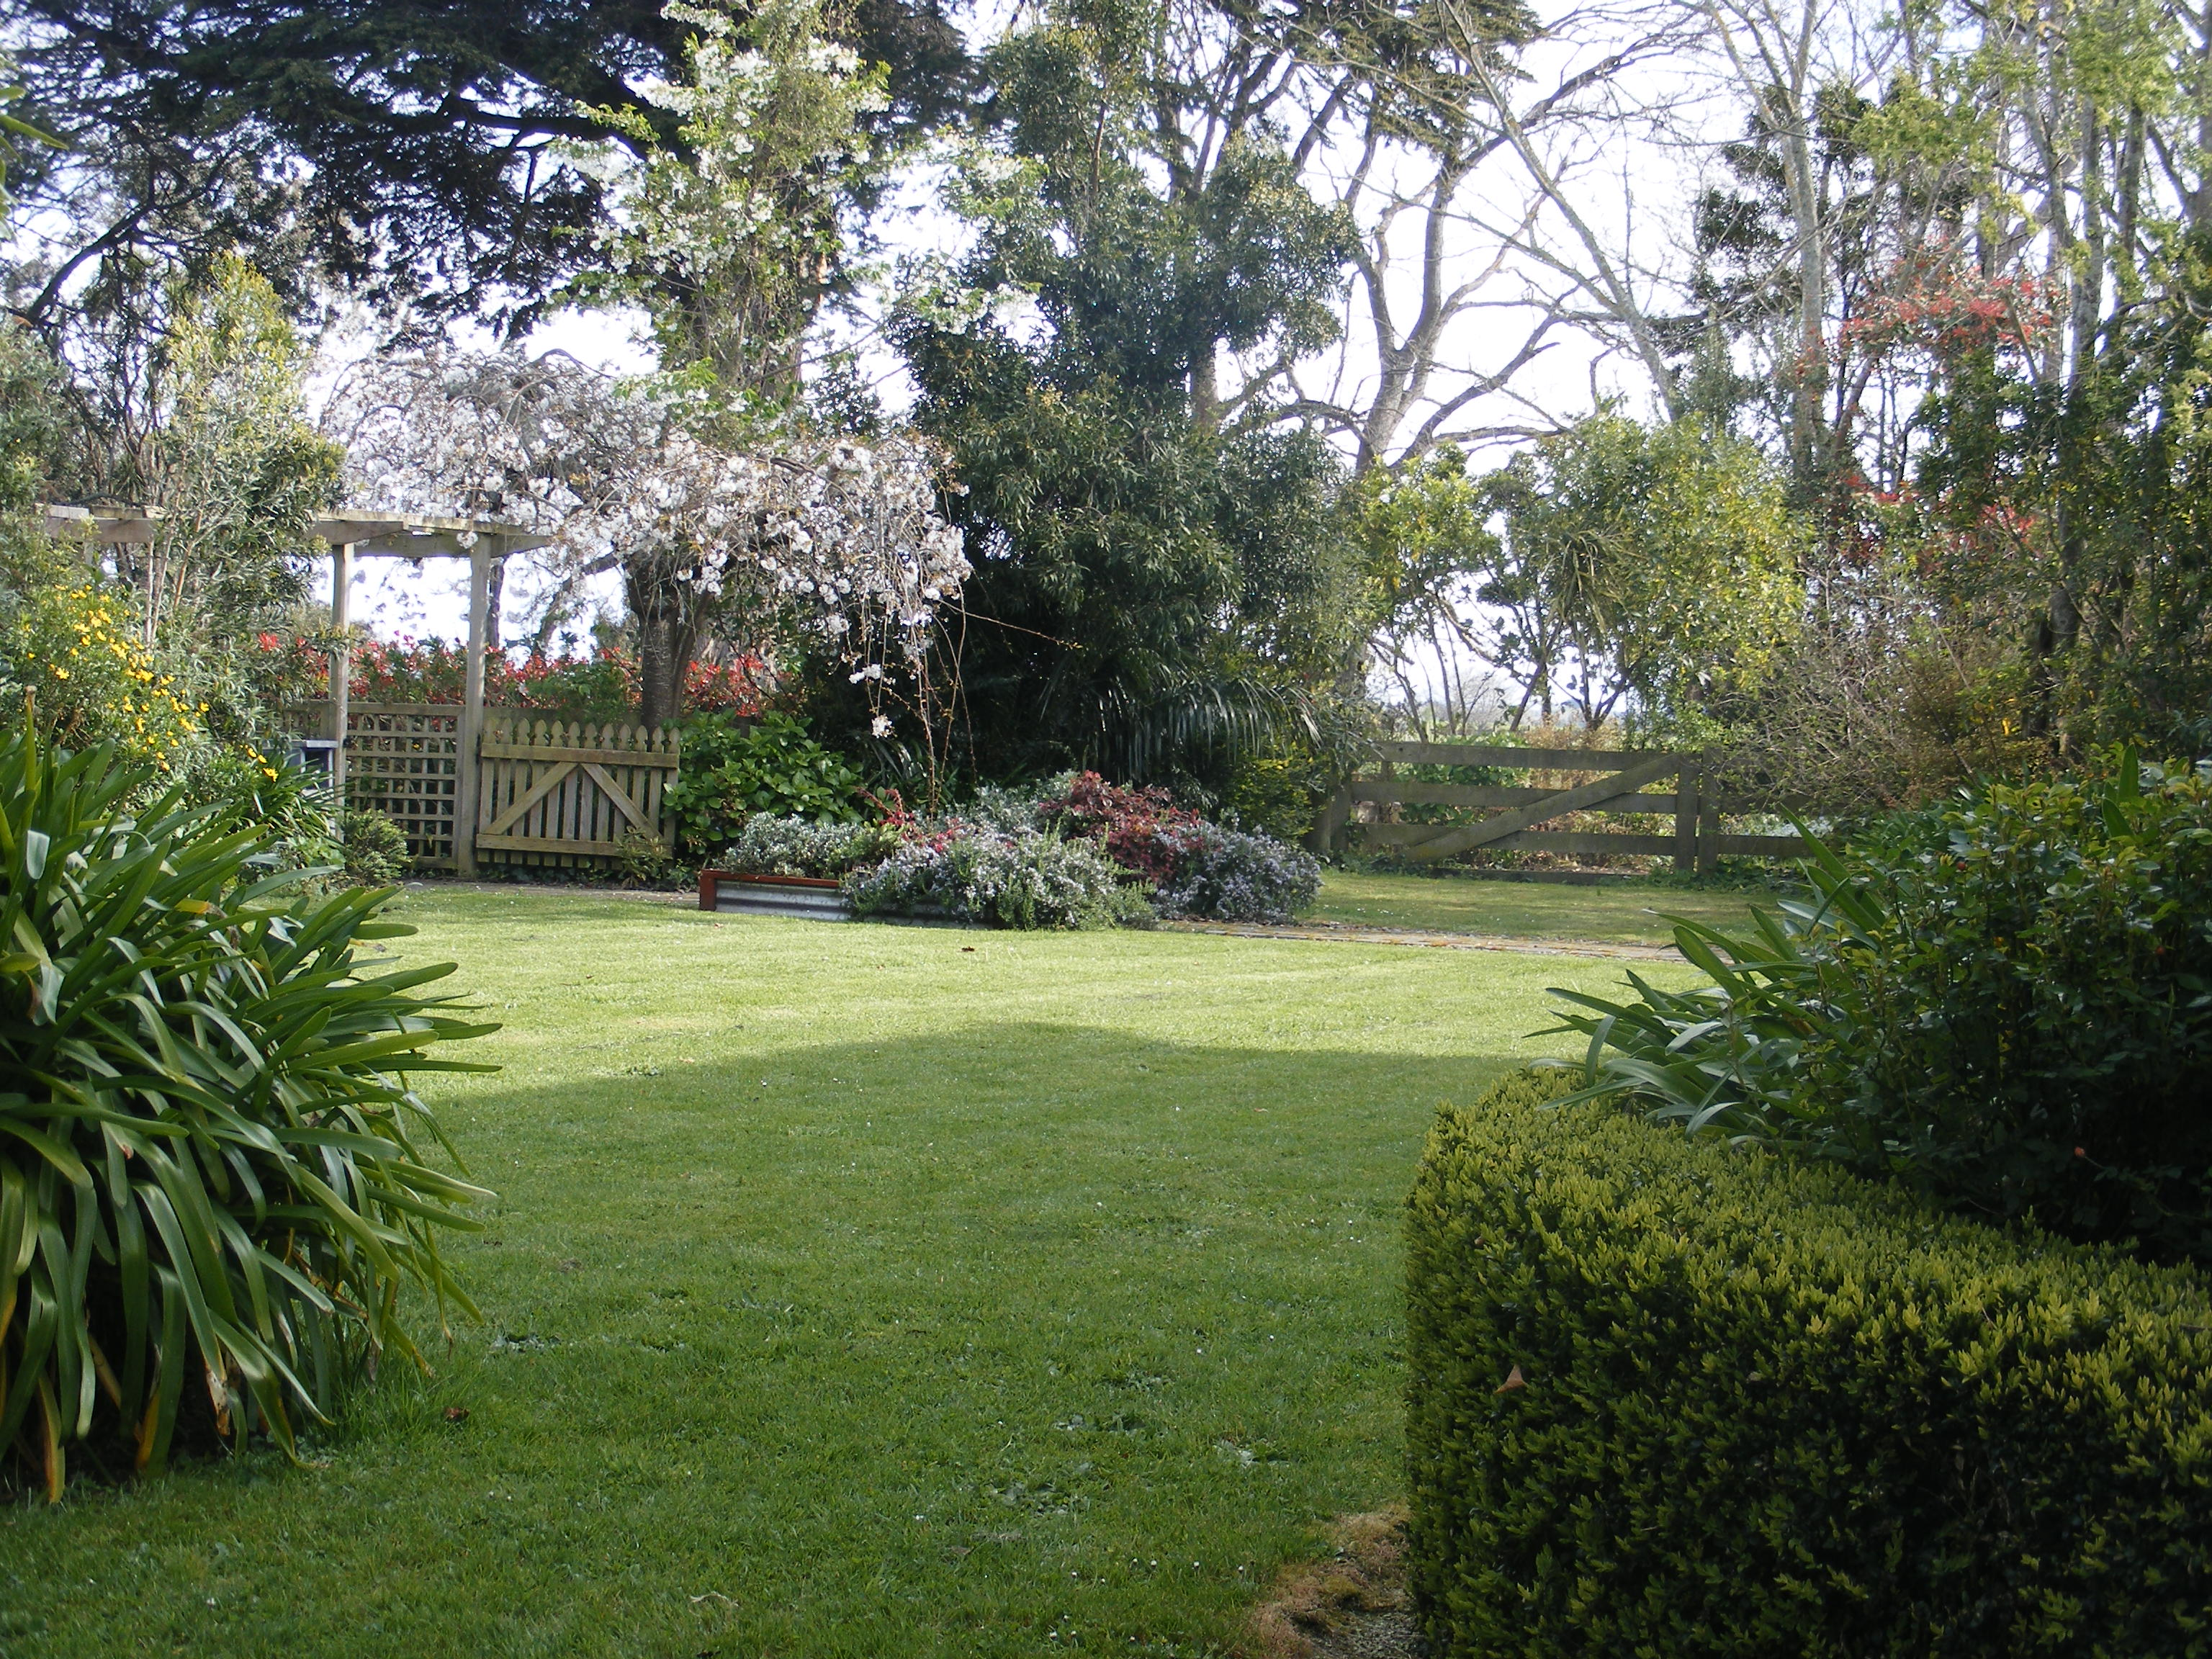 Lawn to carpark gate